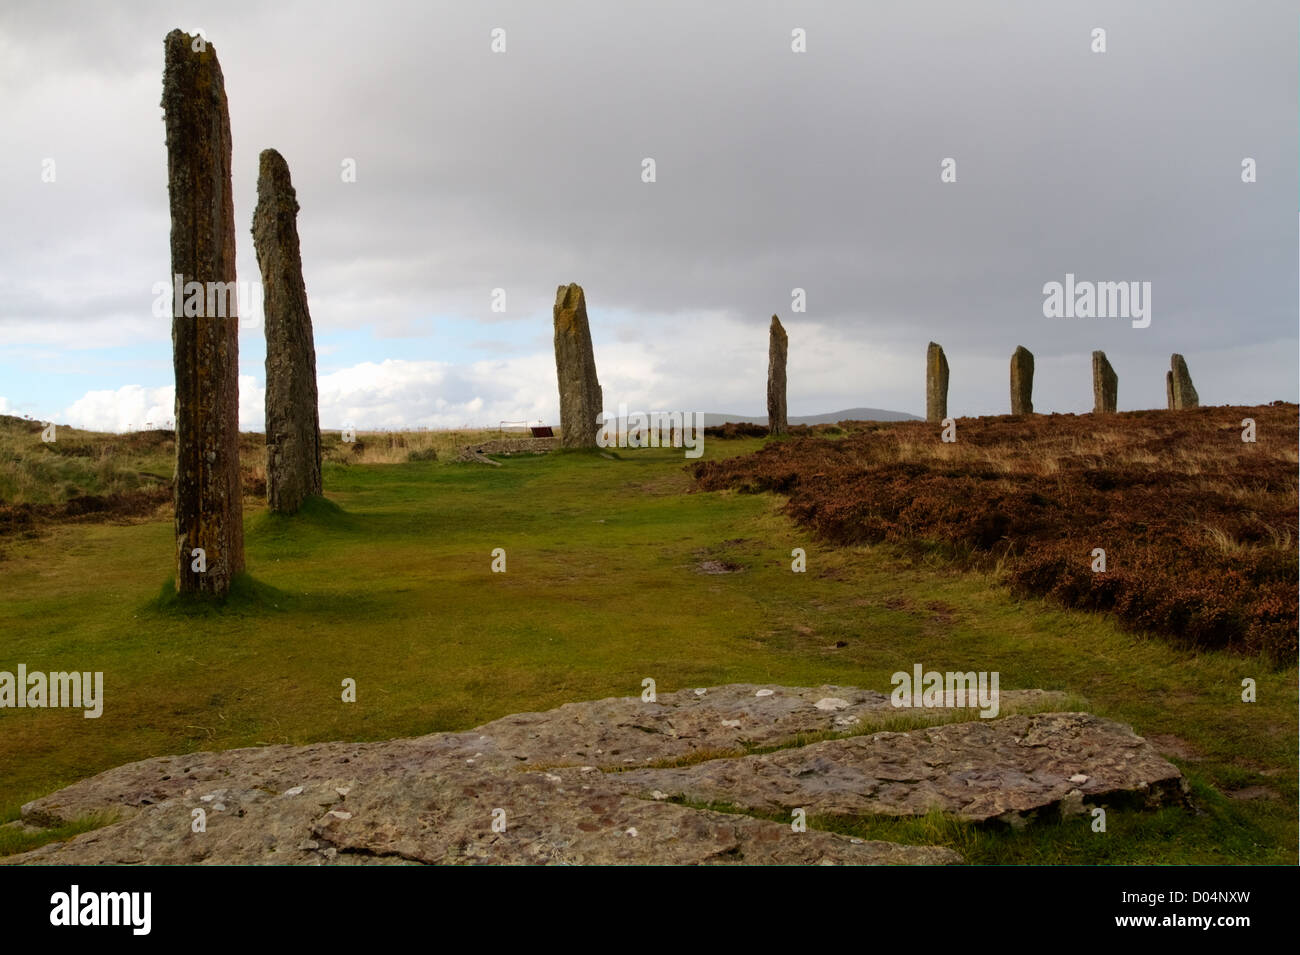 Part of the neolithic stone circle of the Ring of Brodgar on the Island of Orkney, Scotland. - Stock Image